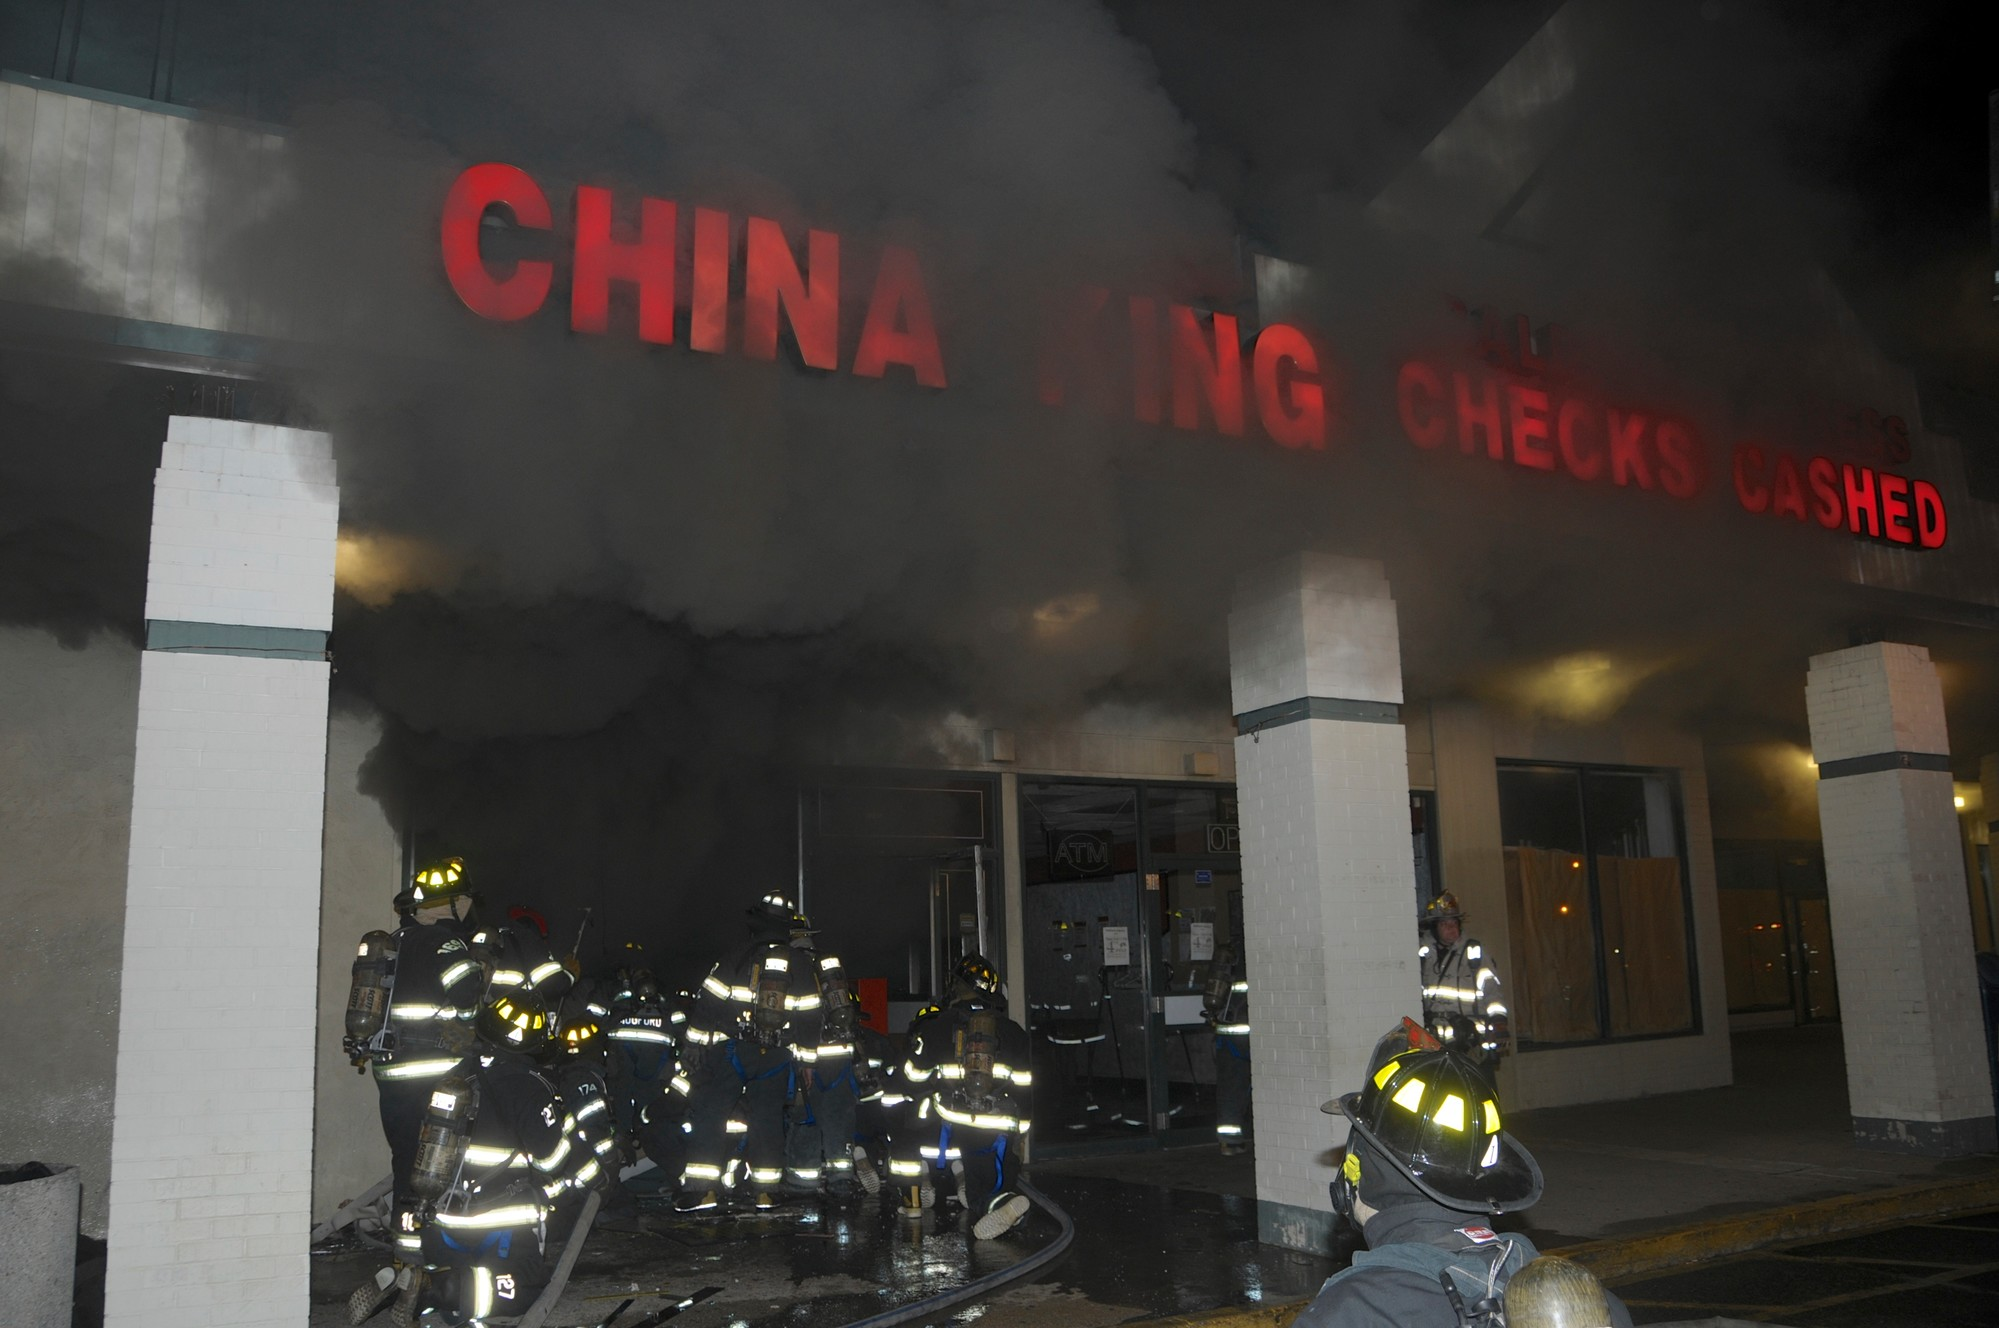 Smoke billowed from China King on July 3 around 1 a.m. after a fire started inside the restaurant's kitchen.